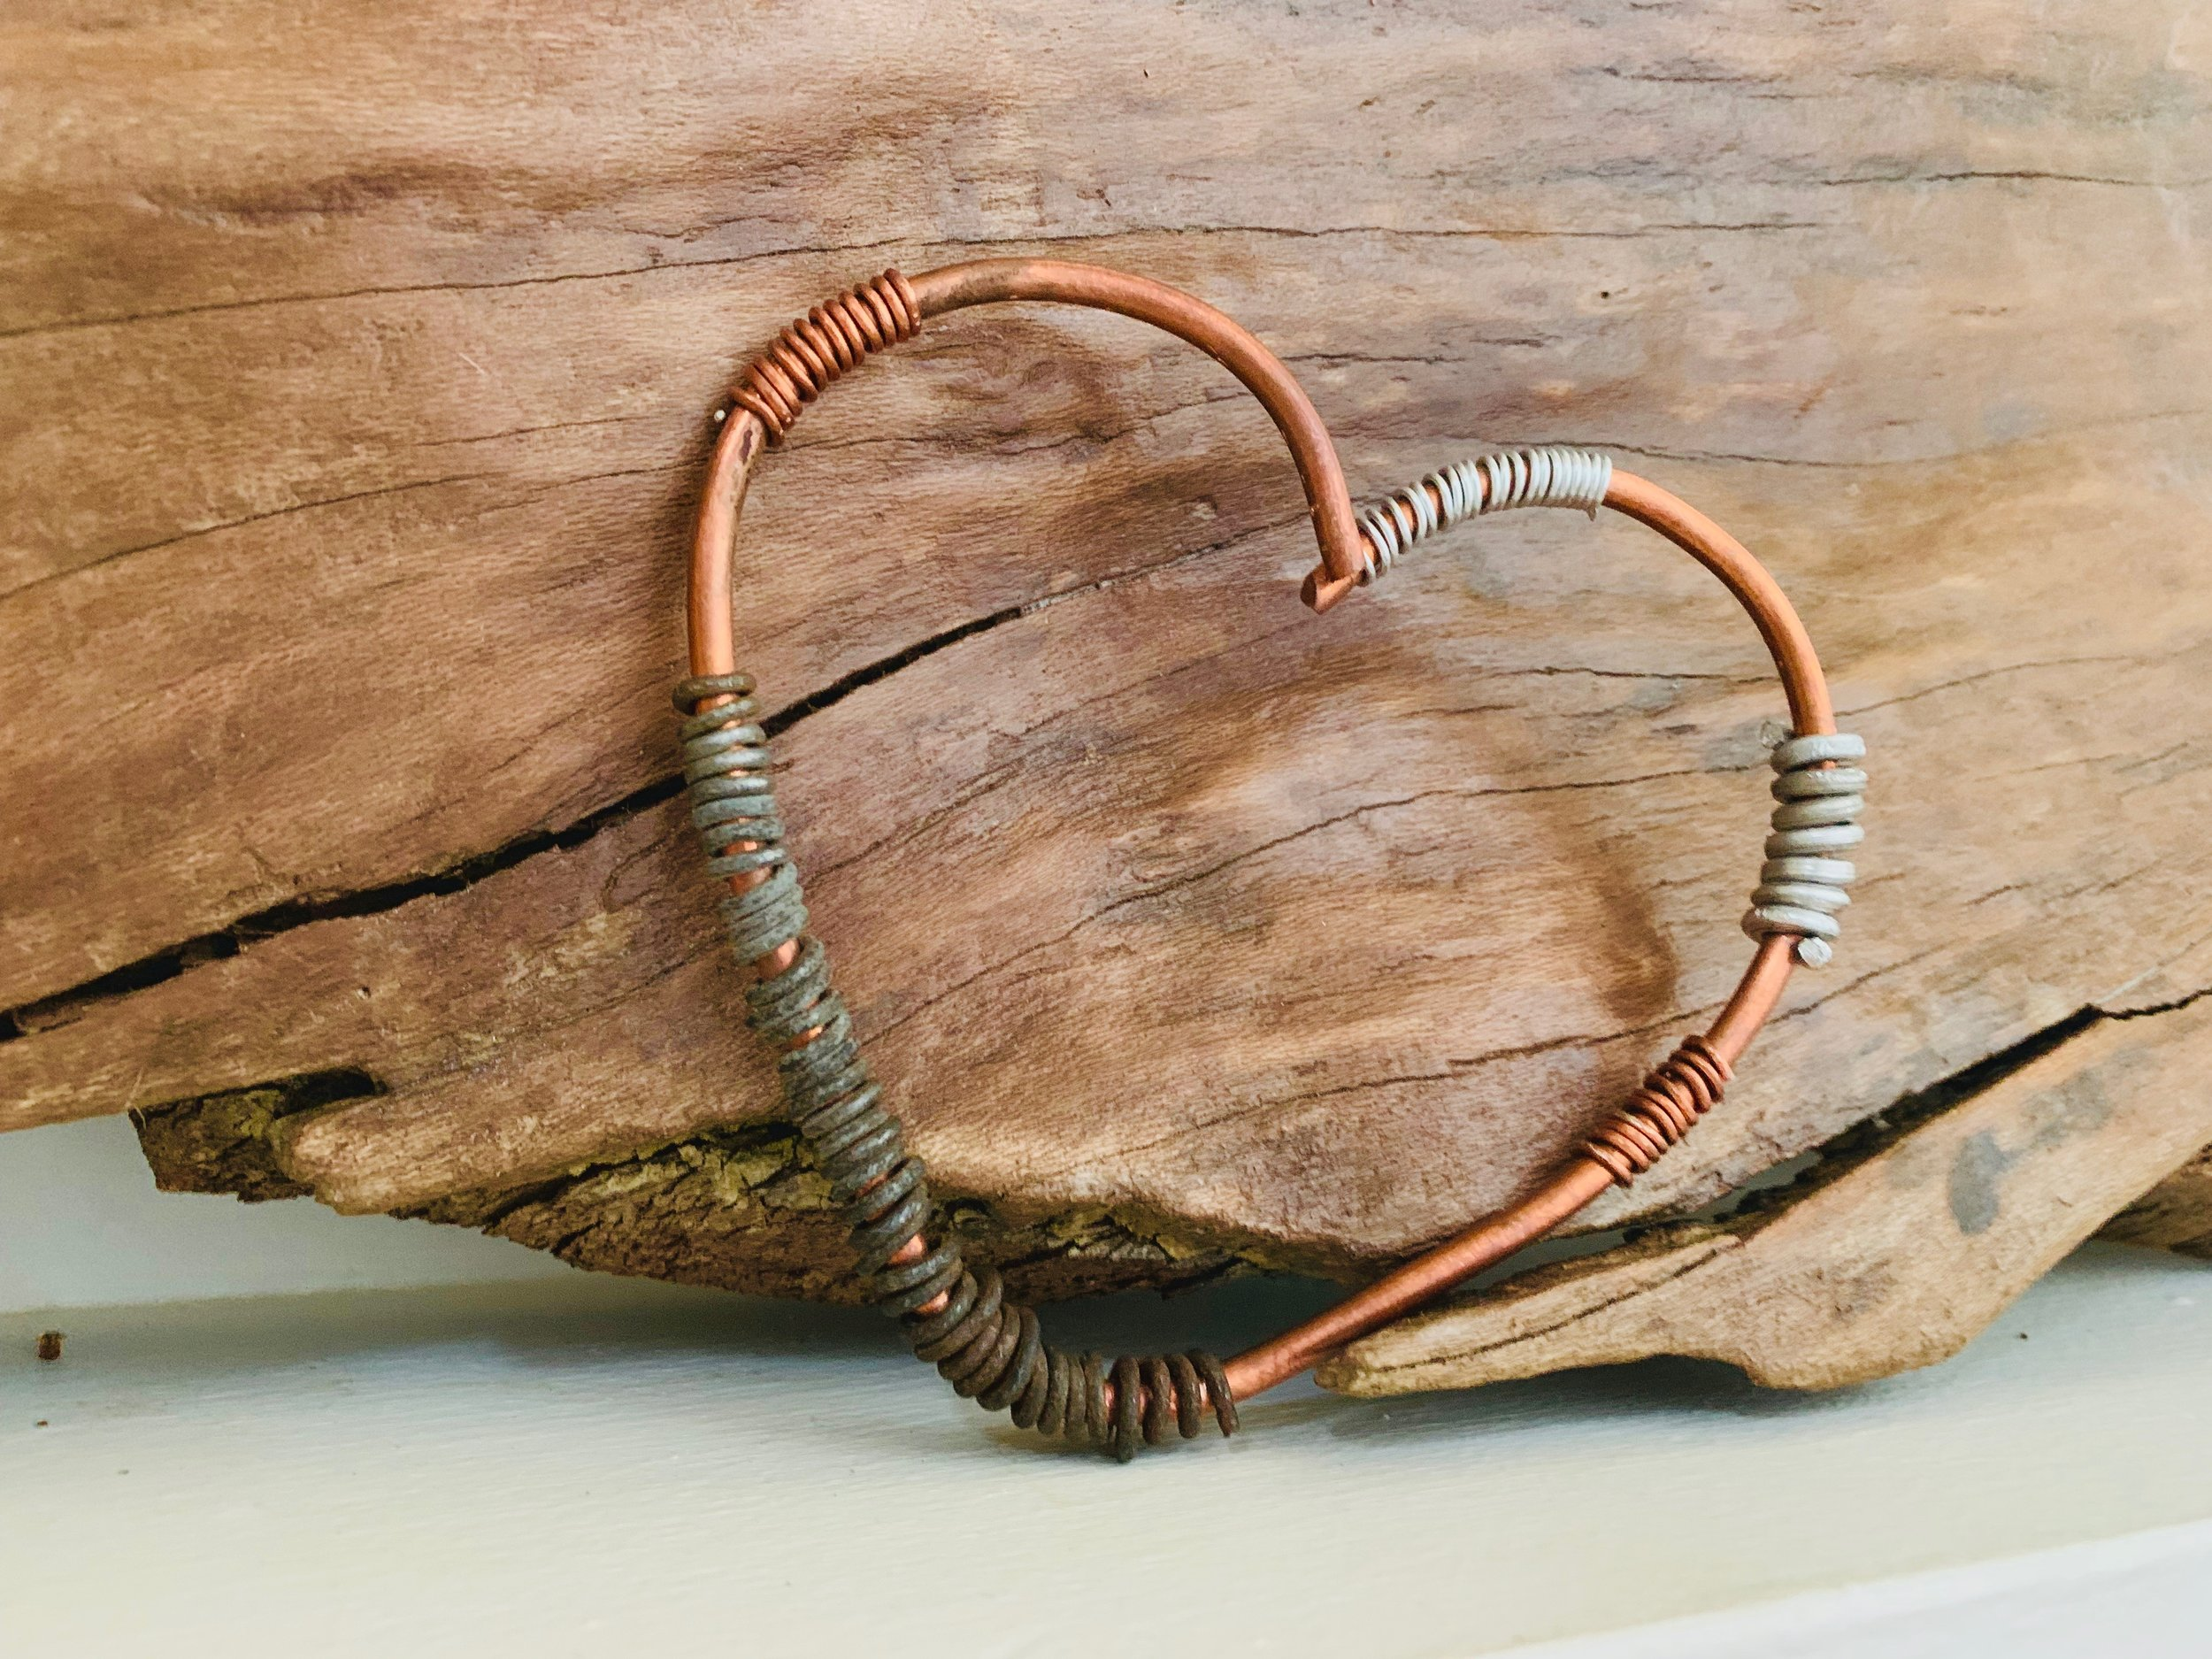 Handmade copper steampunk style heart. Each 5 inch heart is handmade by August, our heart artisan, with care and love. A simple and stylish way to 'give someone your heart', this reminder will affirm that you care and love someone each time they see it. The heart itself is made from 100% copper and accented with aluminum, steel, copper and other assorted wires.